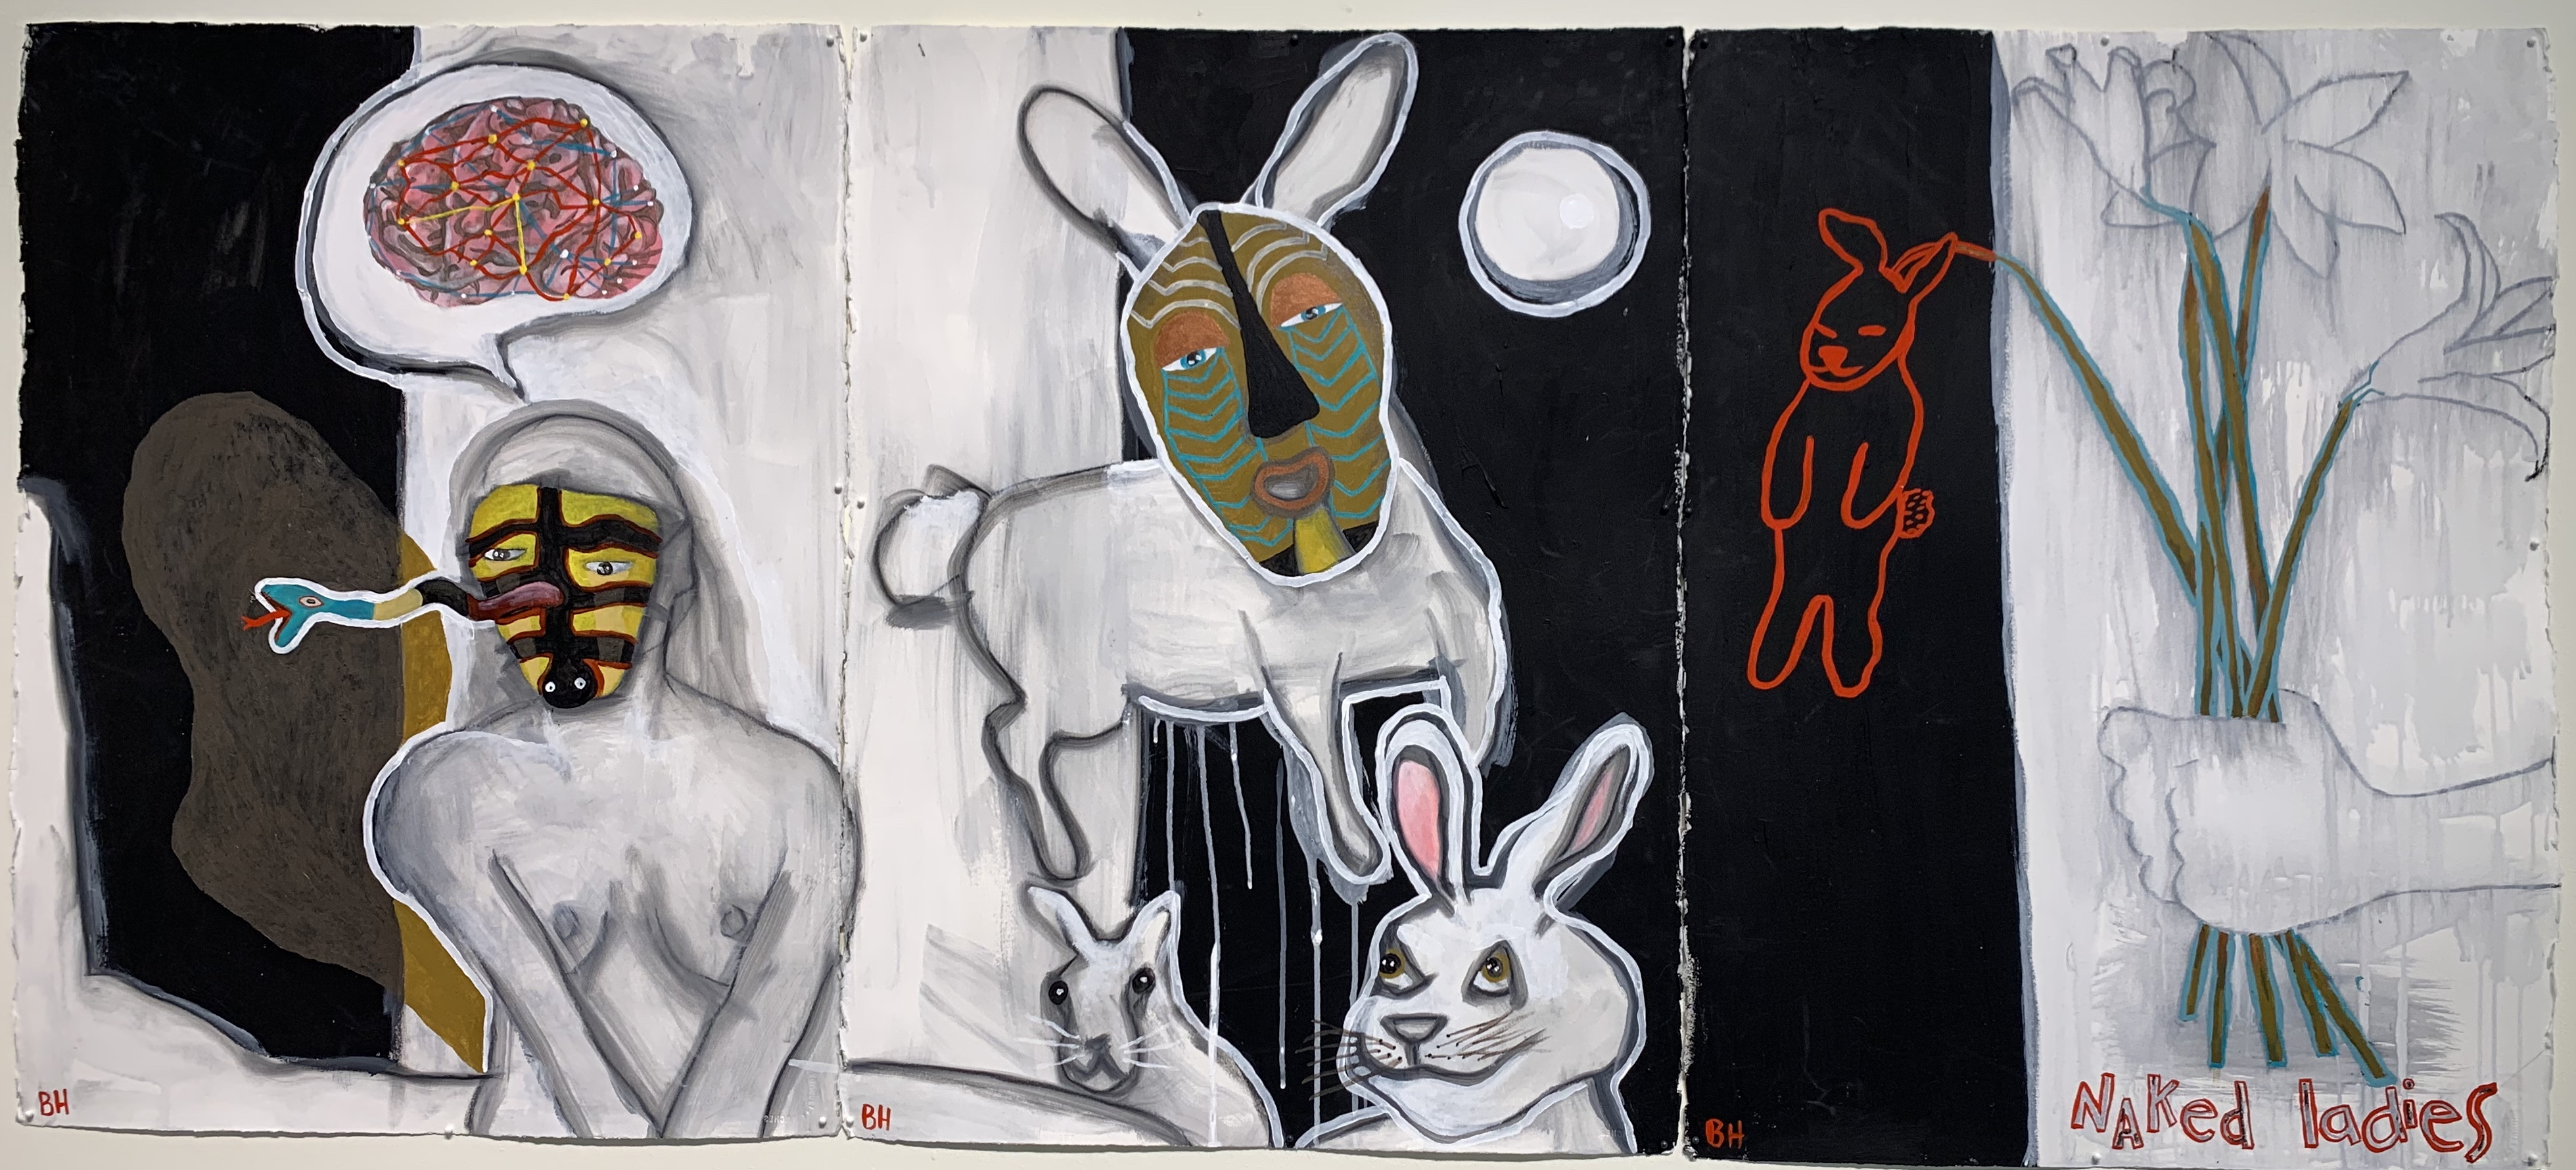 """Bonnie Hull's """"Fort Bragg Trio"""" (acrylic on paper) consists of (from left): """"The Tracks of My Tears,"""" """"Trickster Moon,"""" and """"Naked Ladies."""" Photo by: David Bates"""